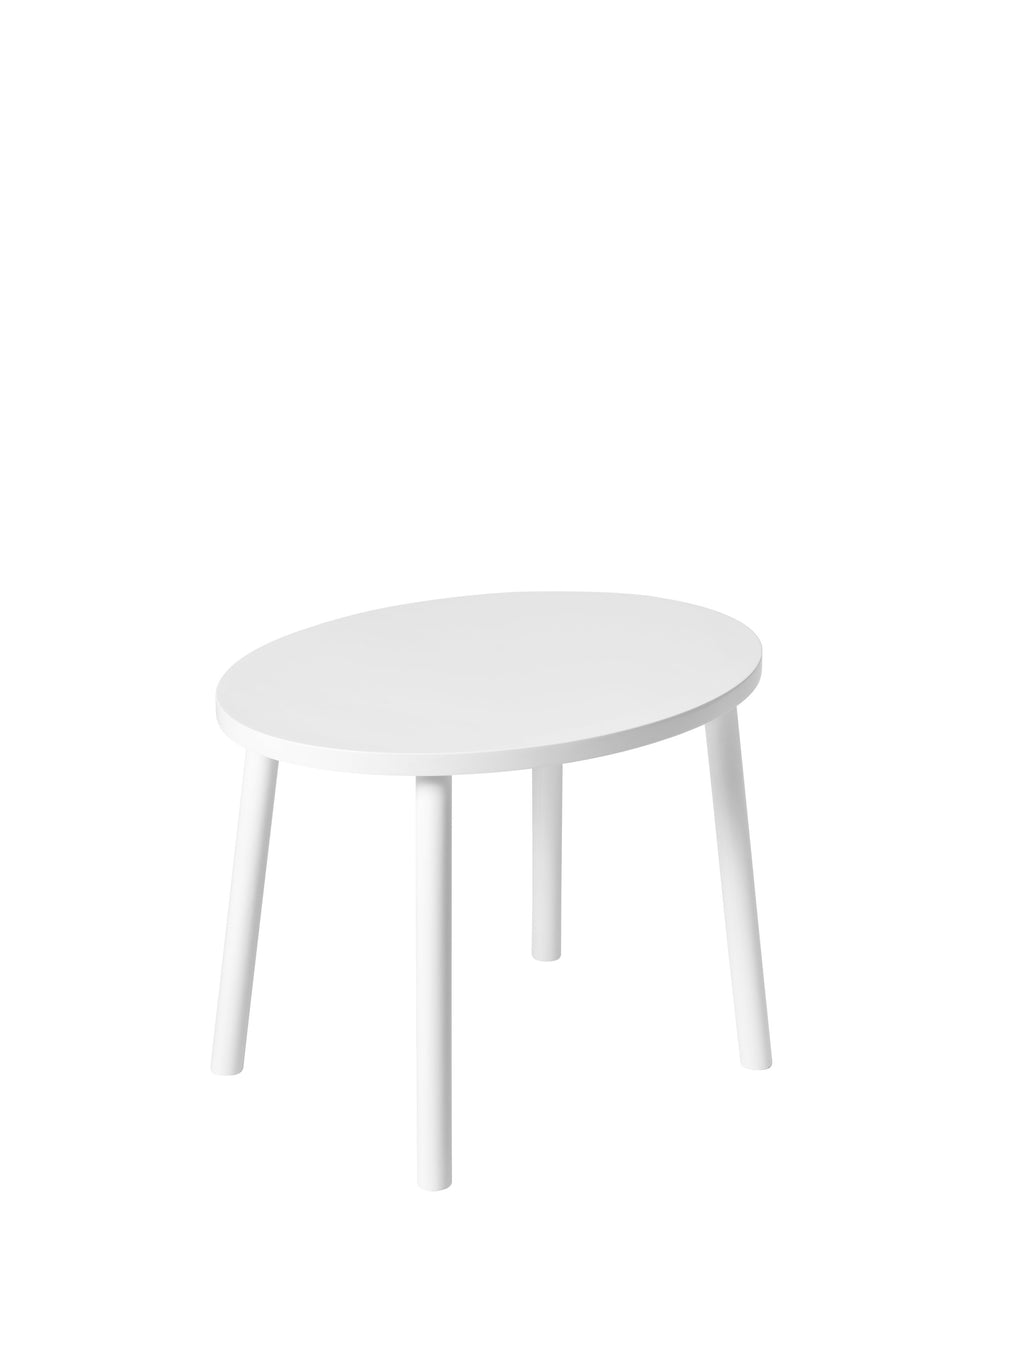 furniture - Nofred Mouse Table (White) - mondocherry